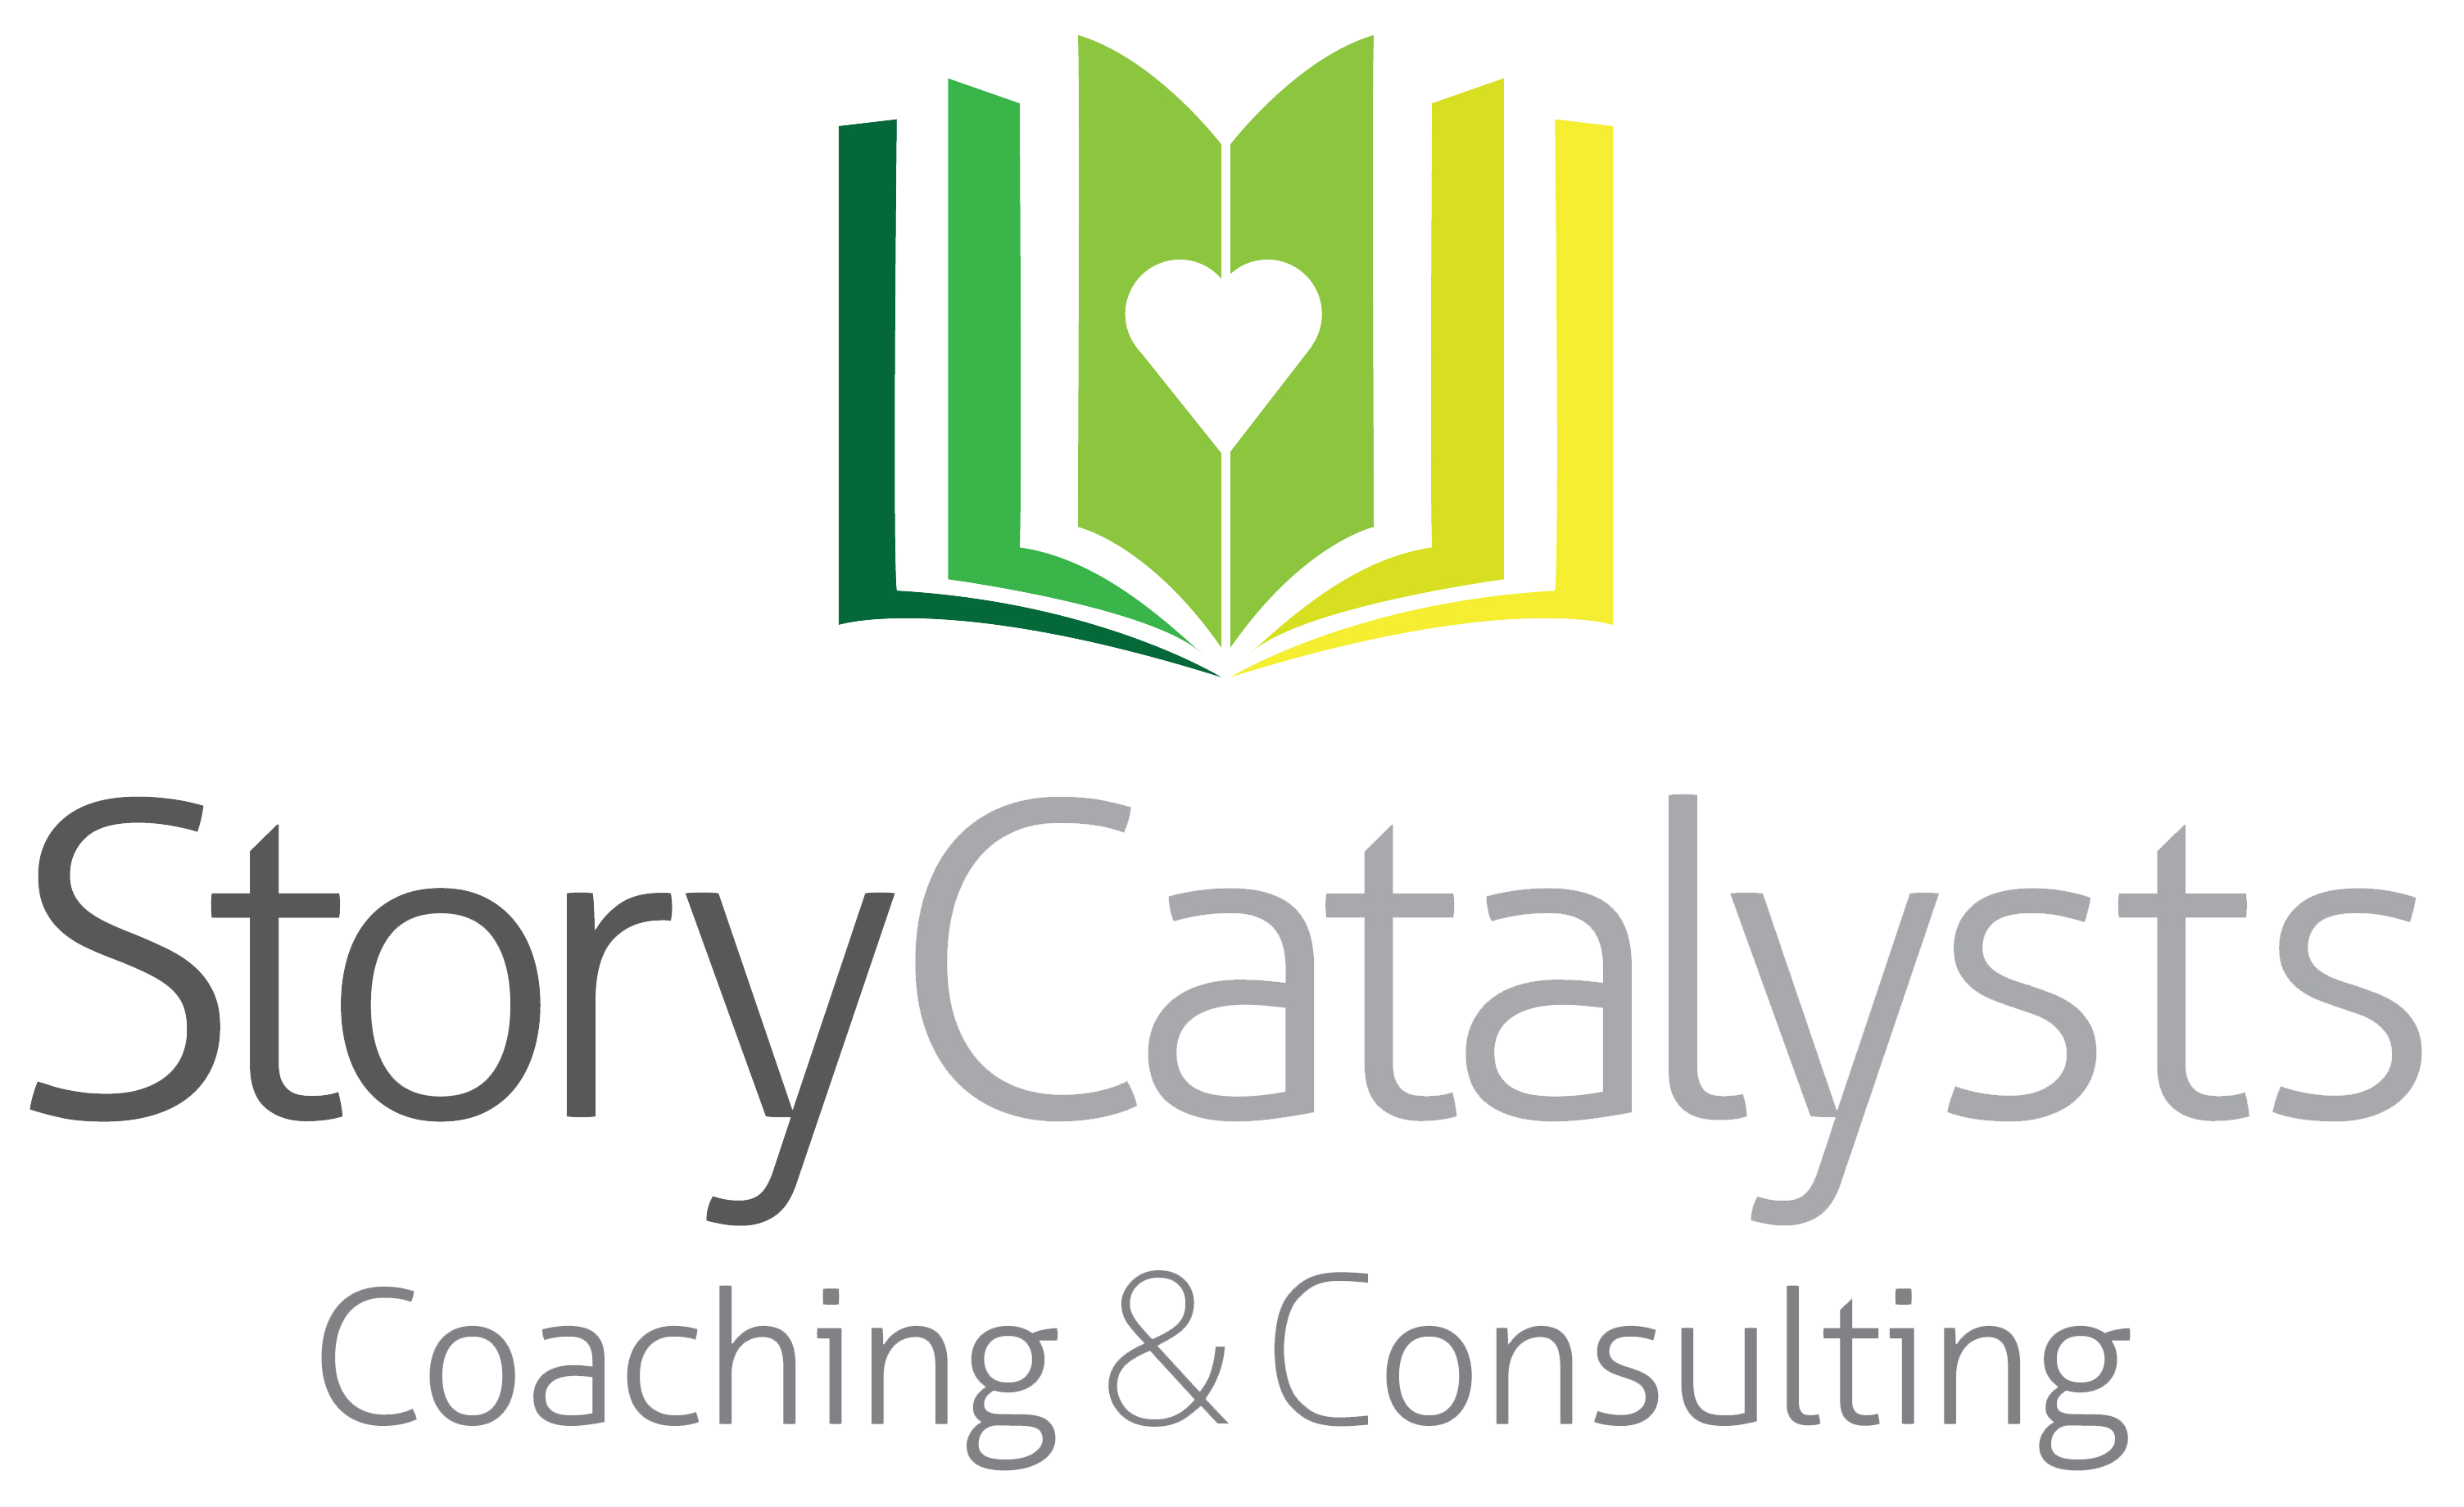 Story Catalysts